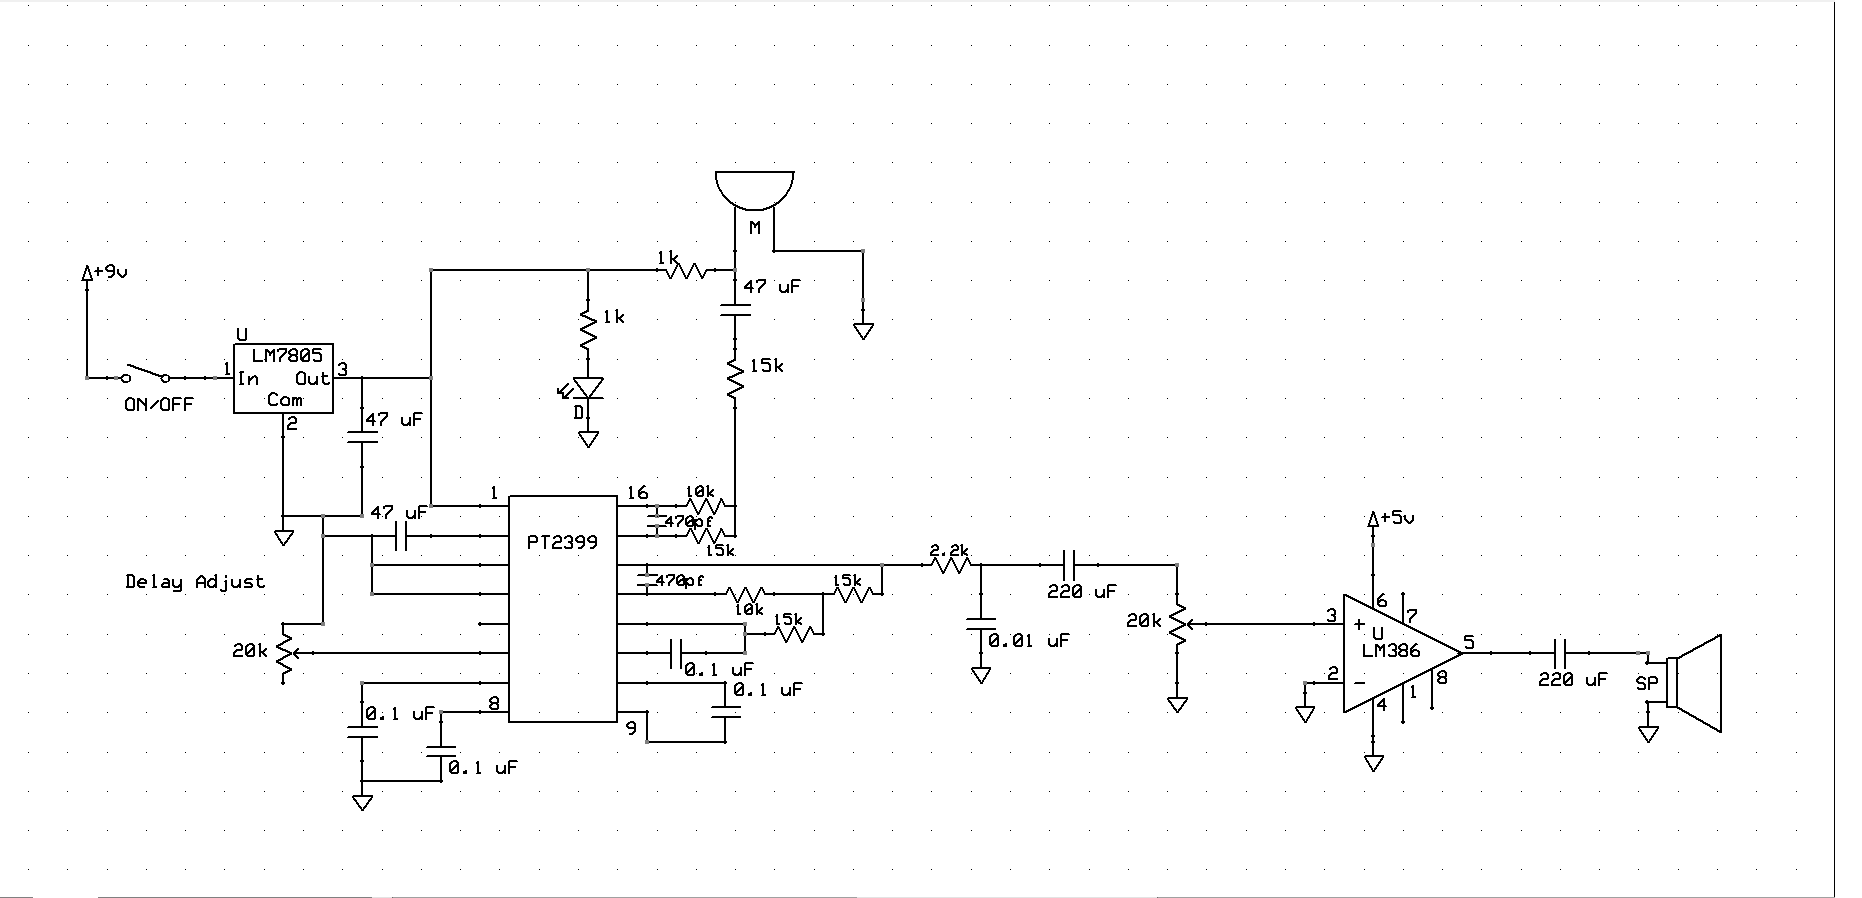 Picture of Follow the Schematic.